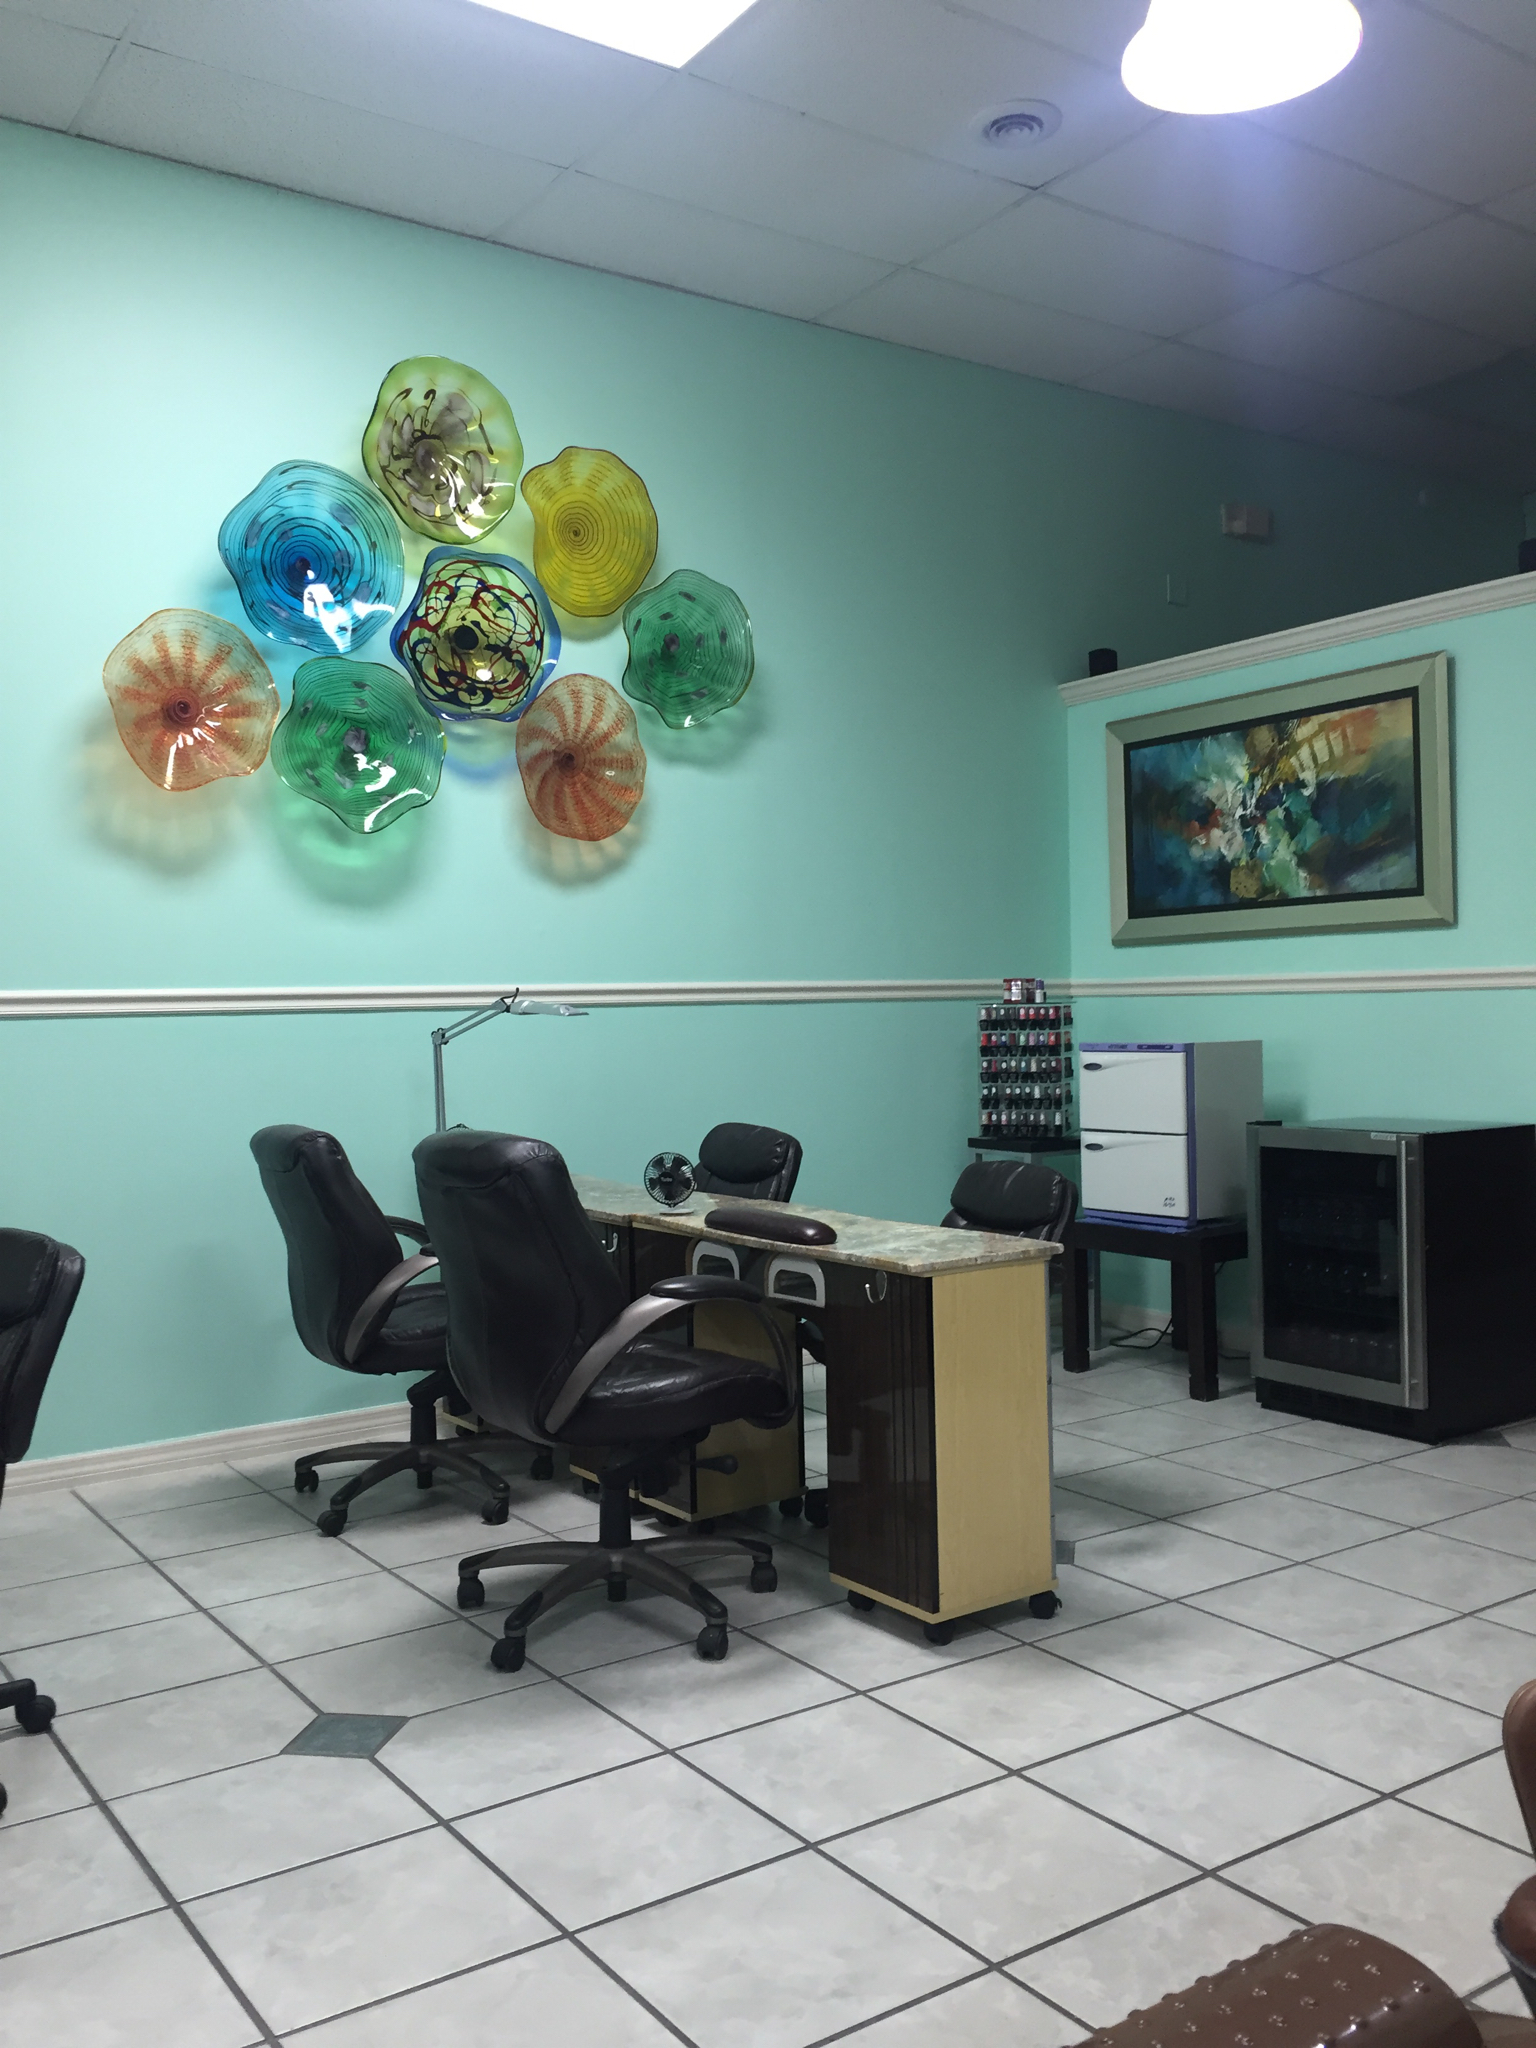 Furniture Consignment Stores In Naples Fl Best of Naples, FL & Things To Do Nearby - YP.com